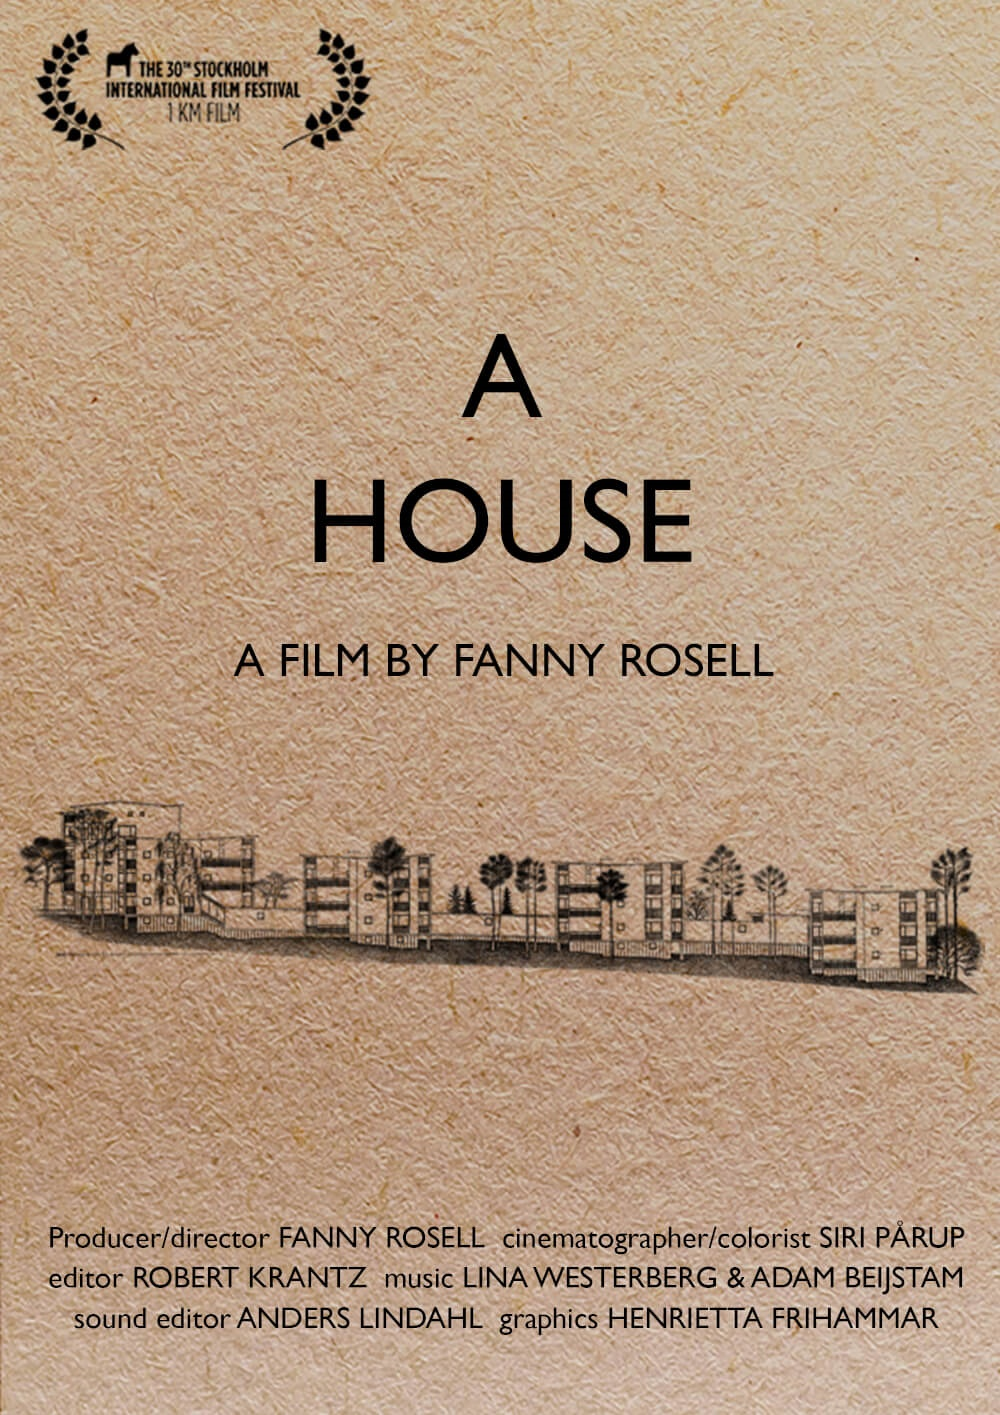 A House directed by Fanny Rosell